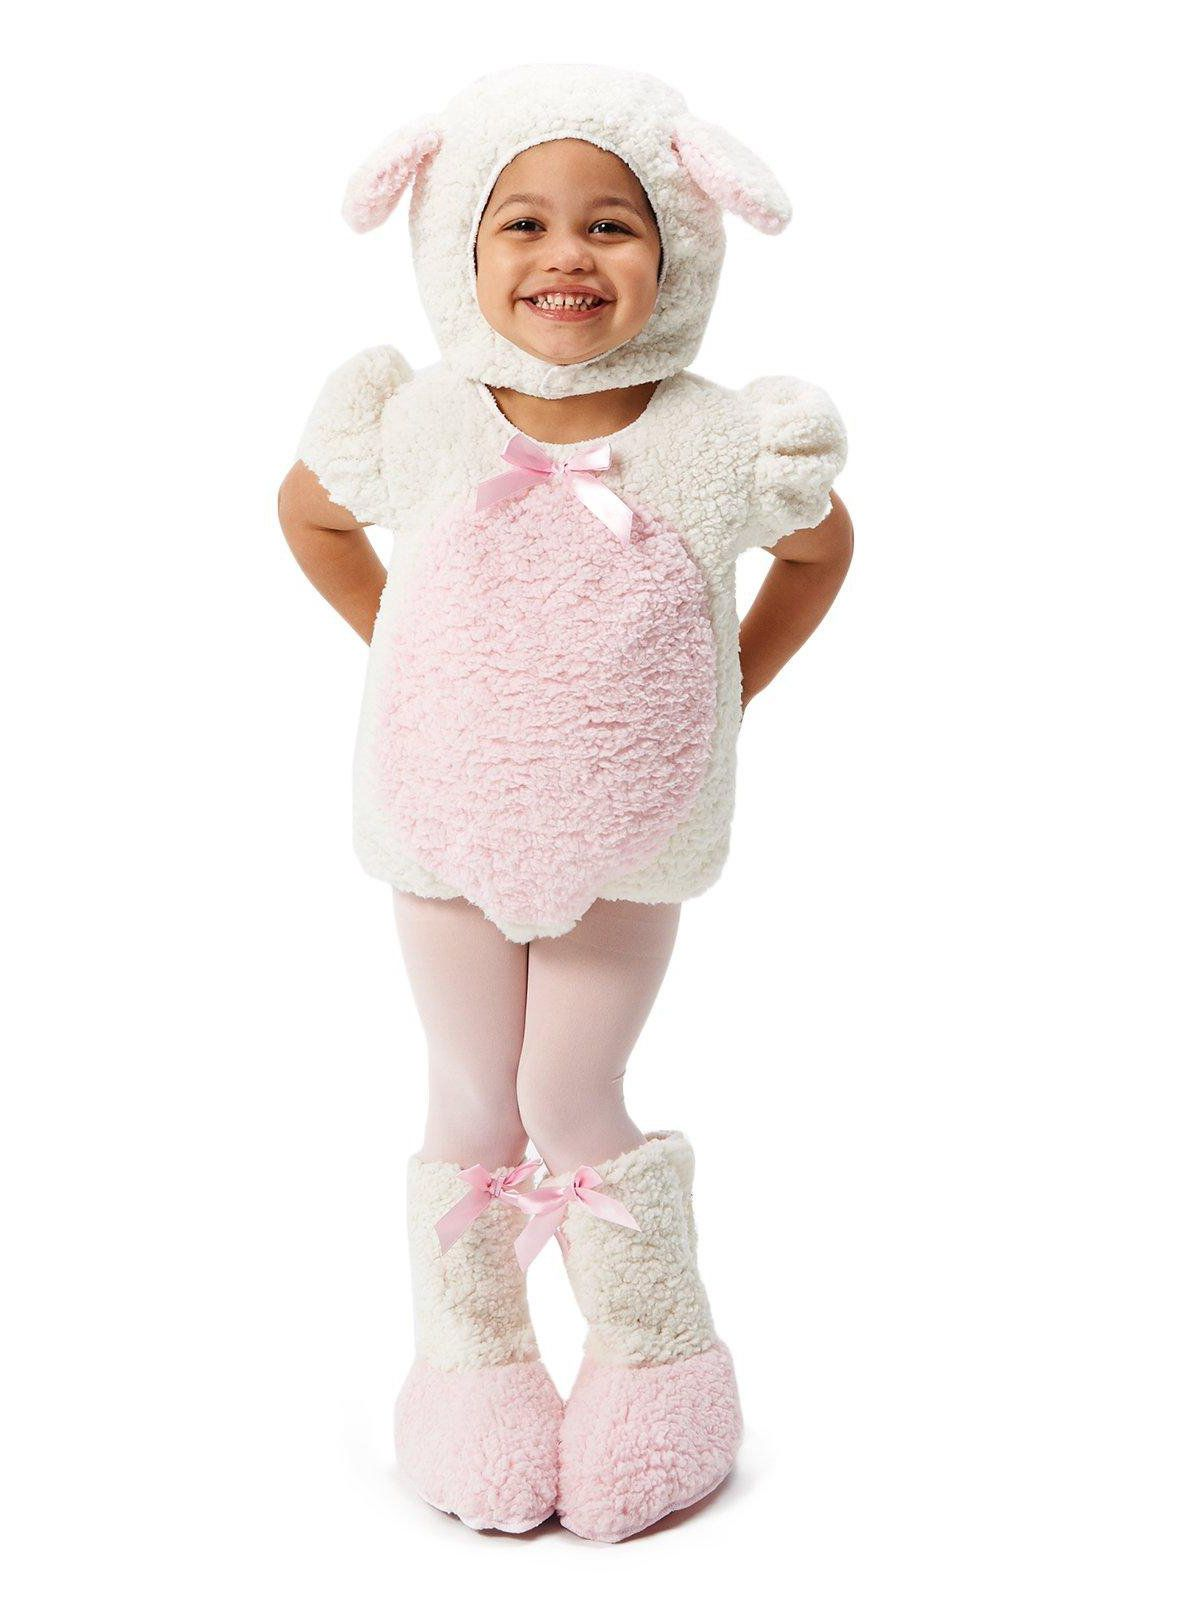 Pink and White Lamb Costume For Toddlers  sc 1 st  Wholesale Halloween Costumes & Pink and White Lamb Costume For Toddlers | Wholesale Halloween Costumes